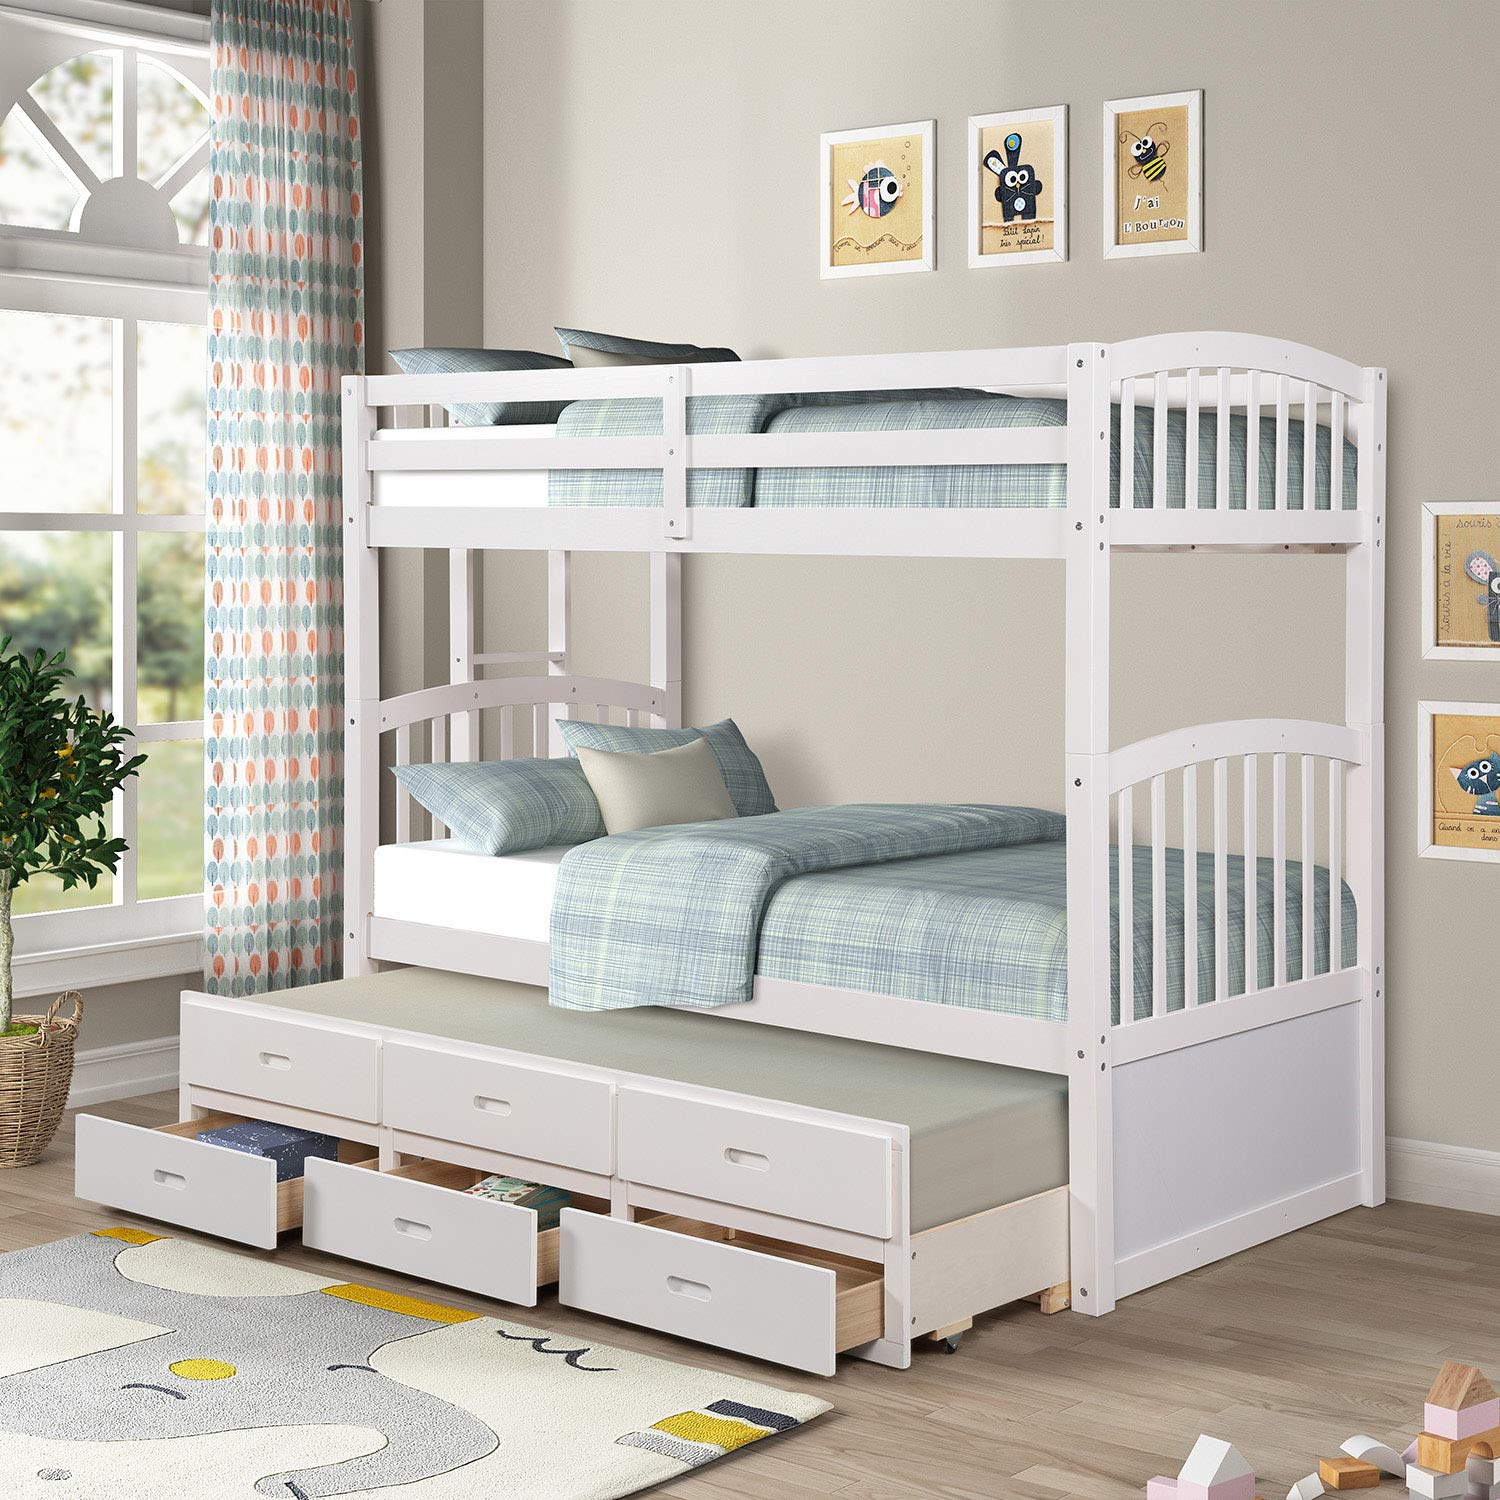 Furniture of America Louver Design Daybed with Trundle, Twin, White